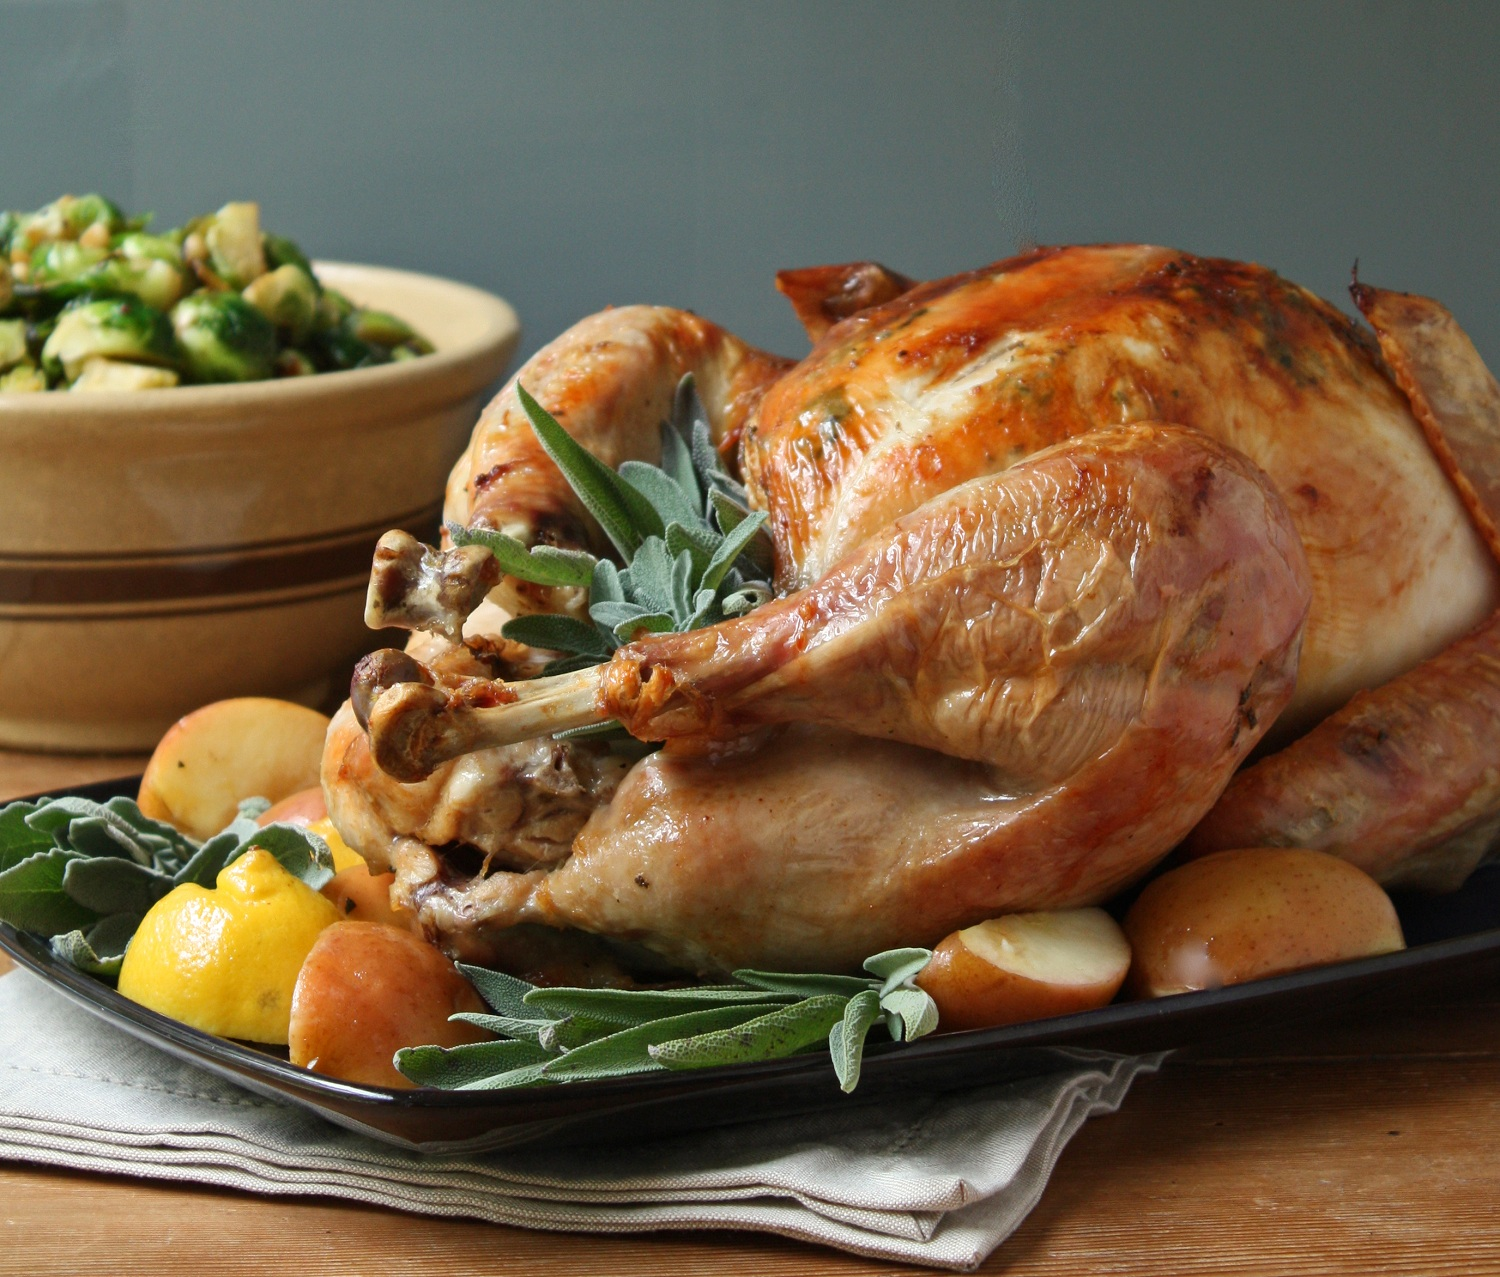 Easy Roasted Turkey w/ Sage Butter - I Breathe... I'm Hungry...